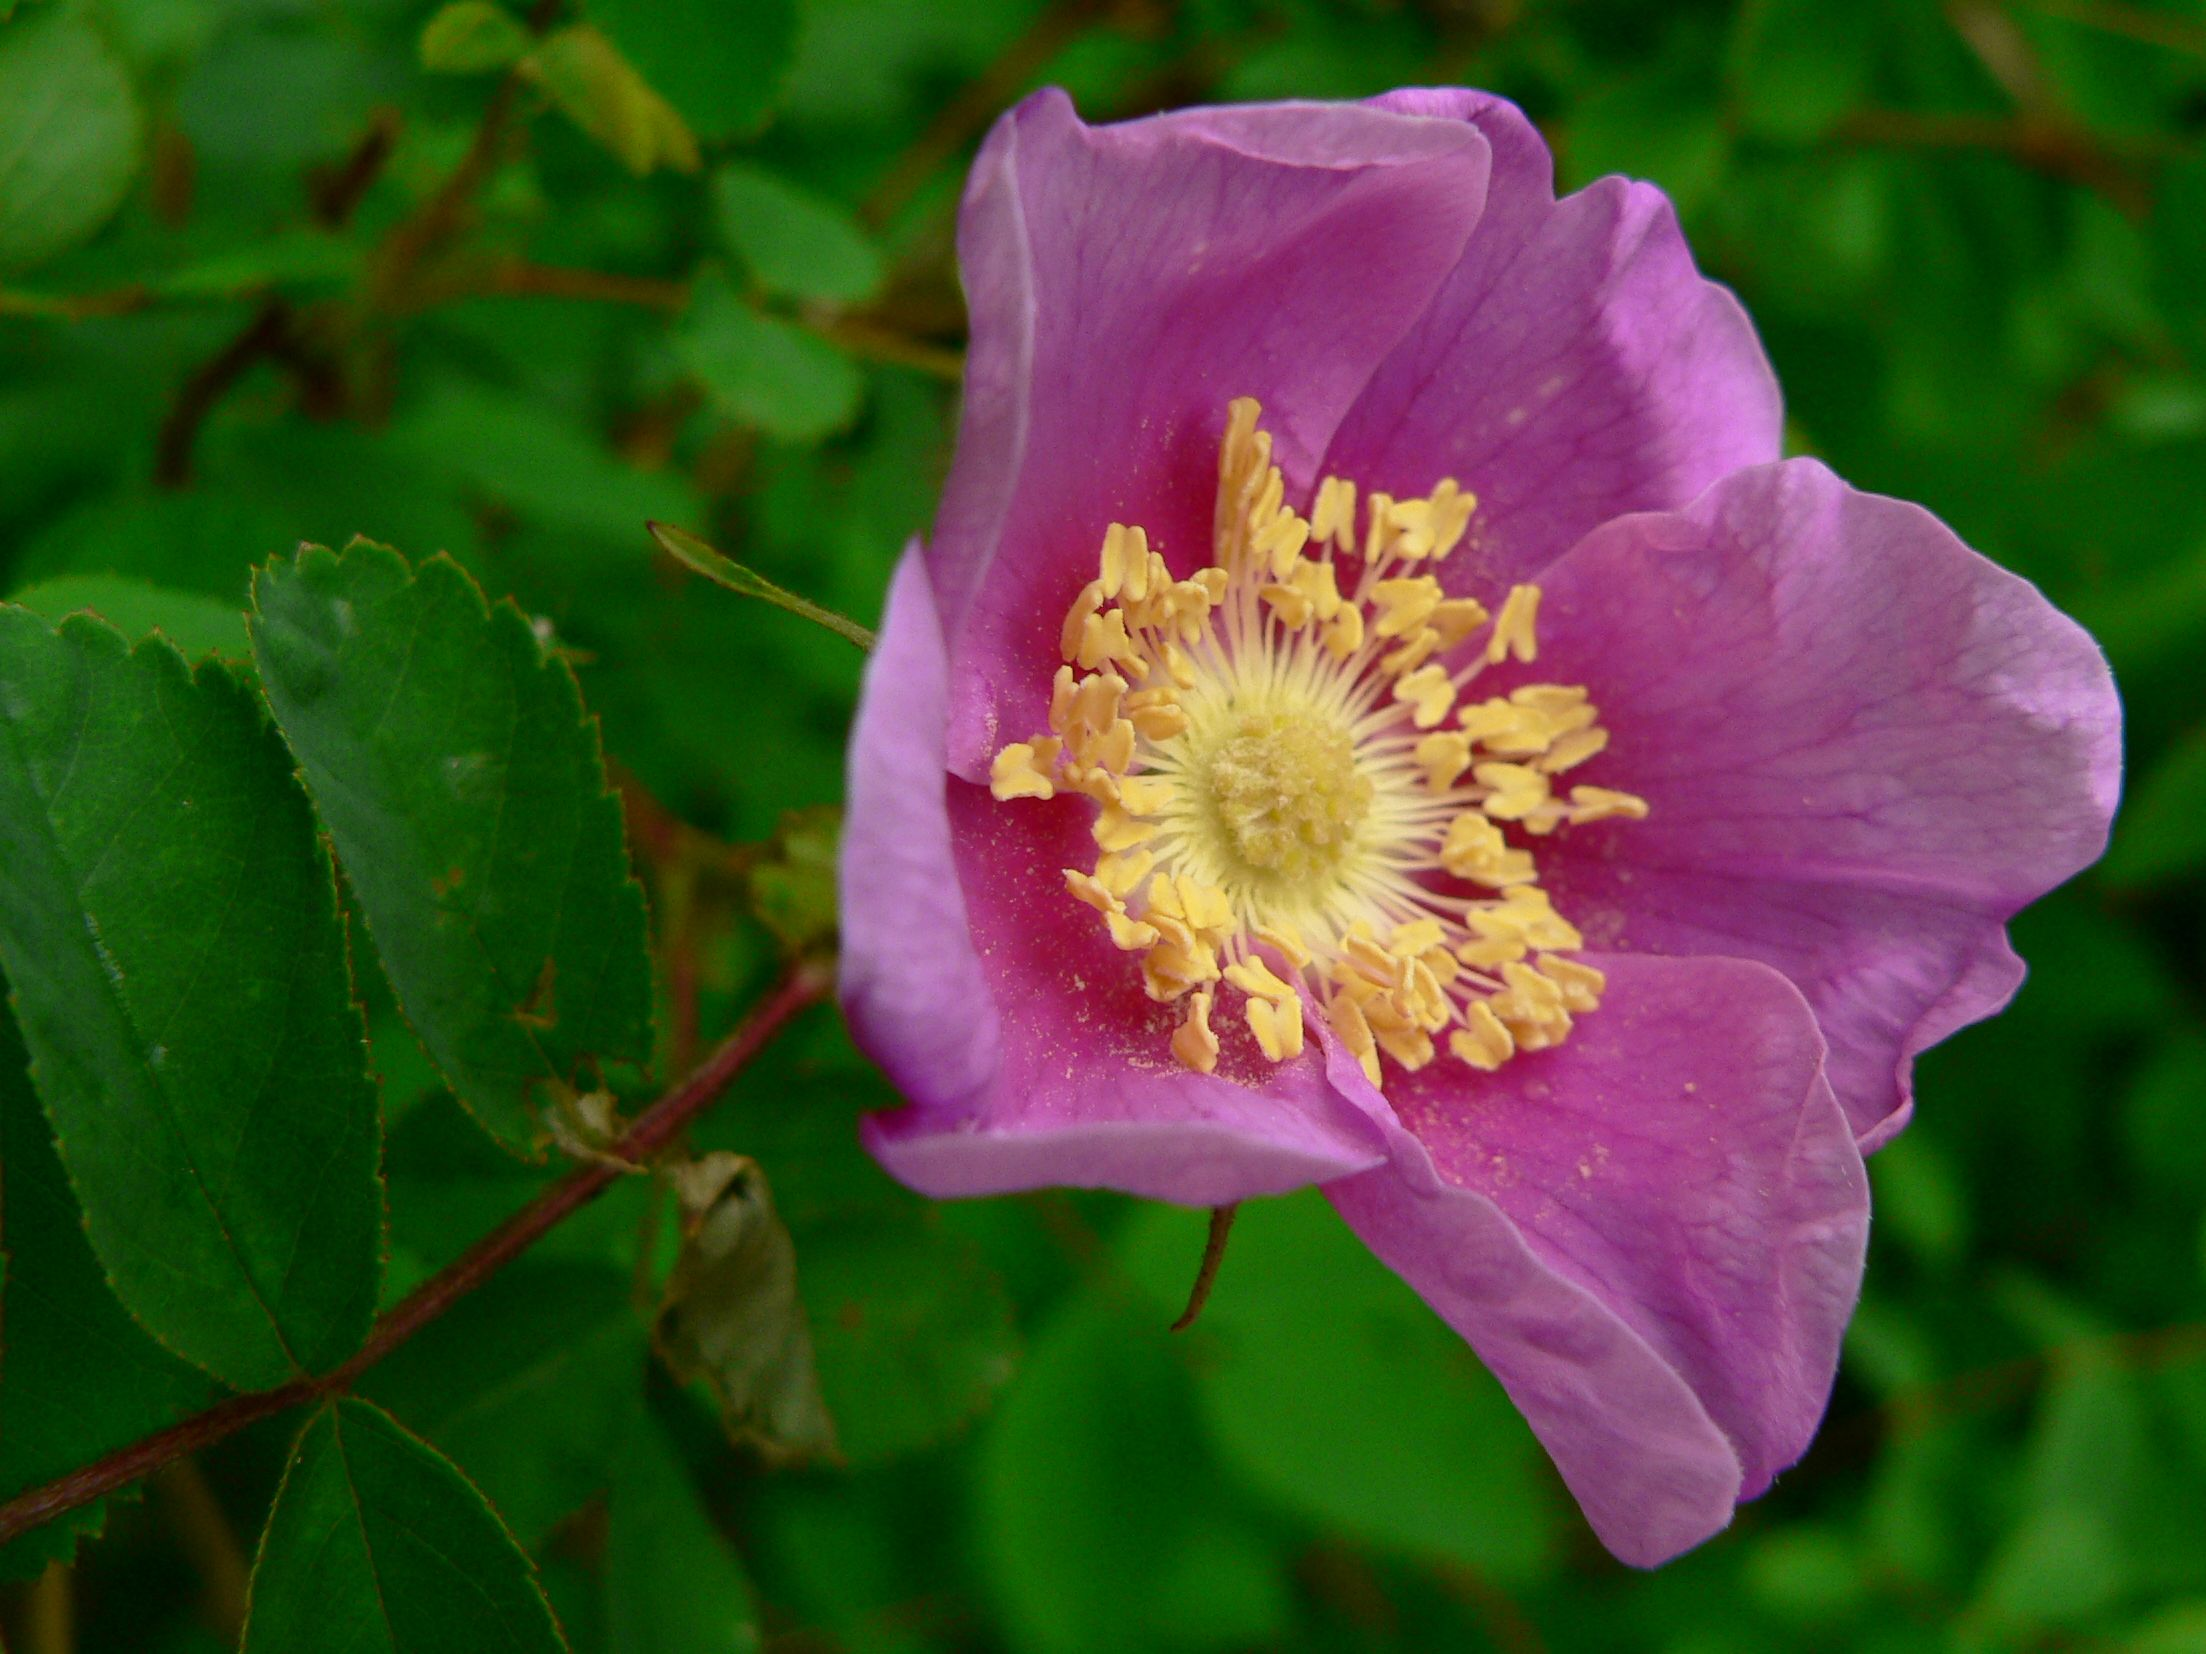 Planting for Pollinators: May